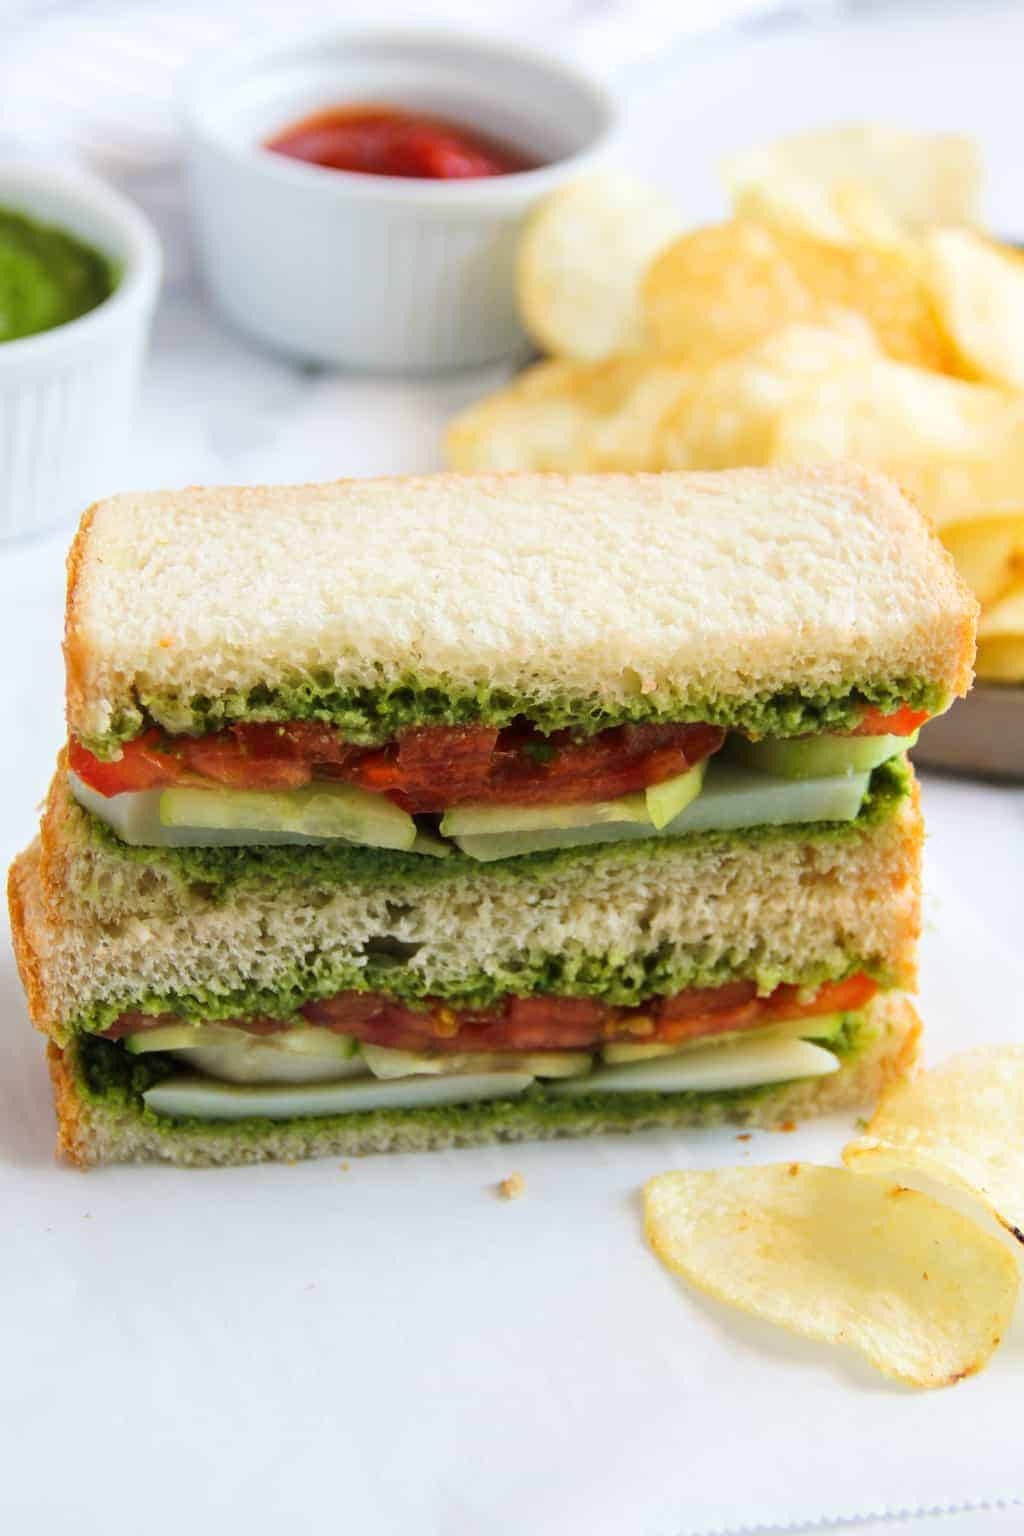 chutney sandwich with chips